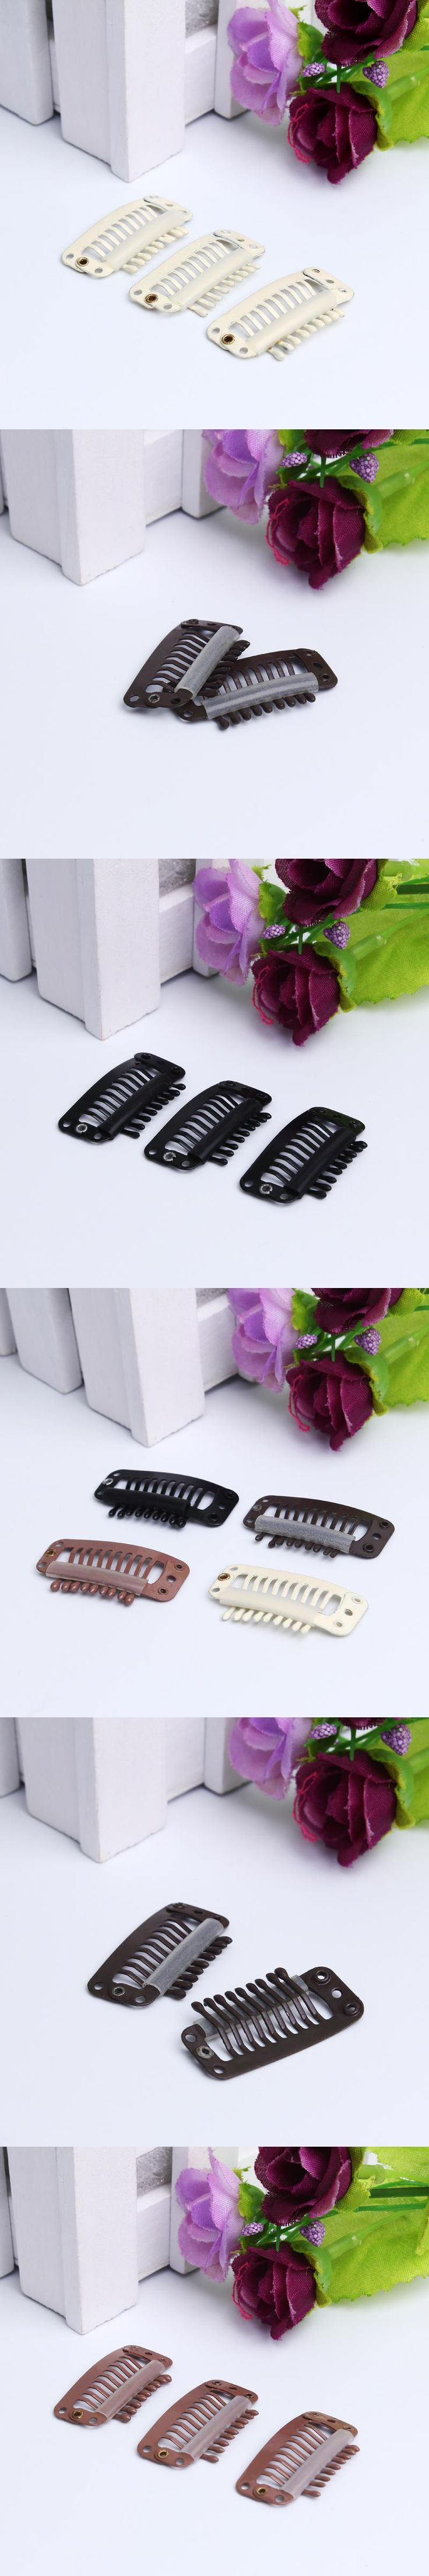 100pcs 32mm 9-teeth Hair Extension Clips Snap Metal Clips With Silicone Back For Clip in Human Hair Extensions Wig Comb Clips